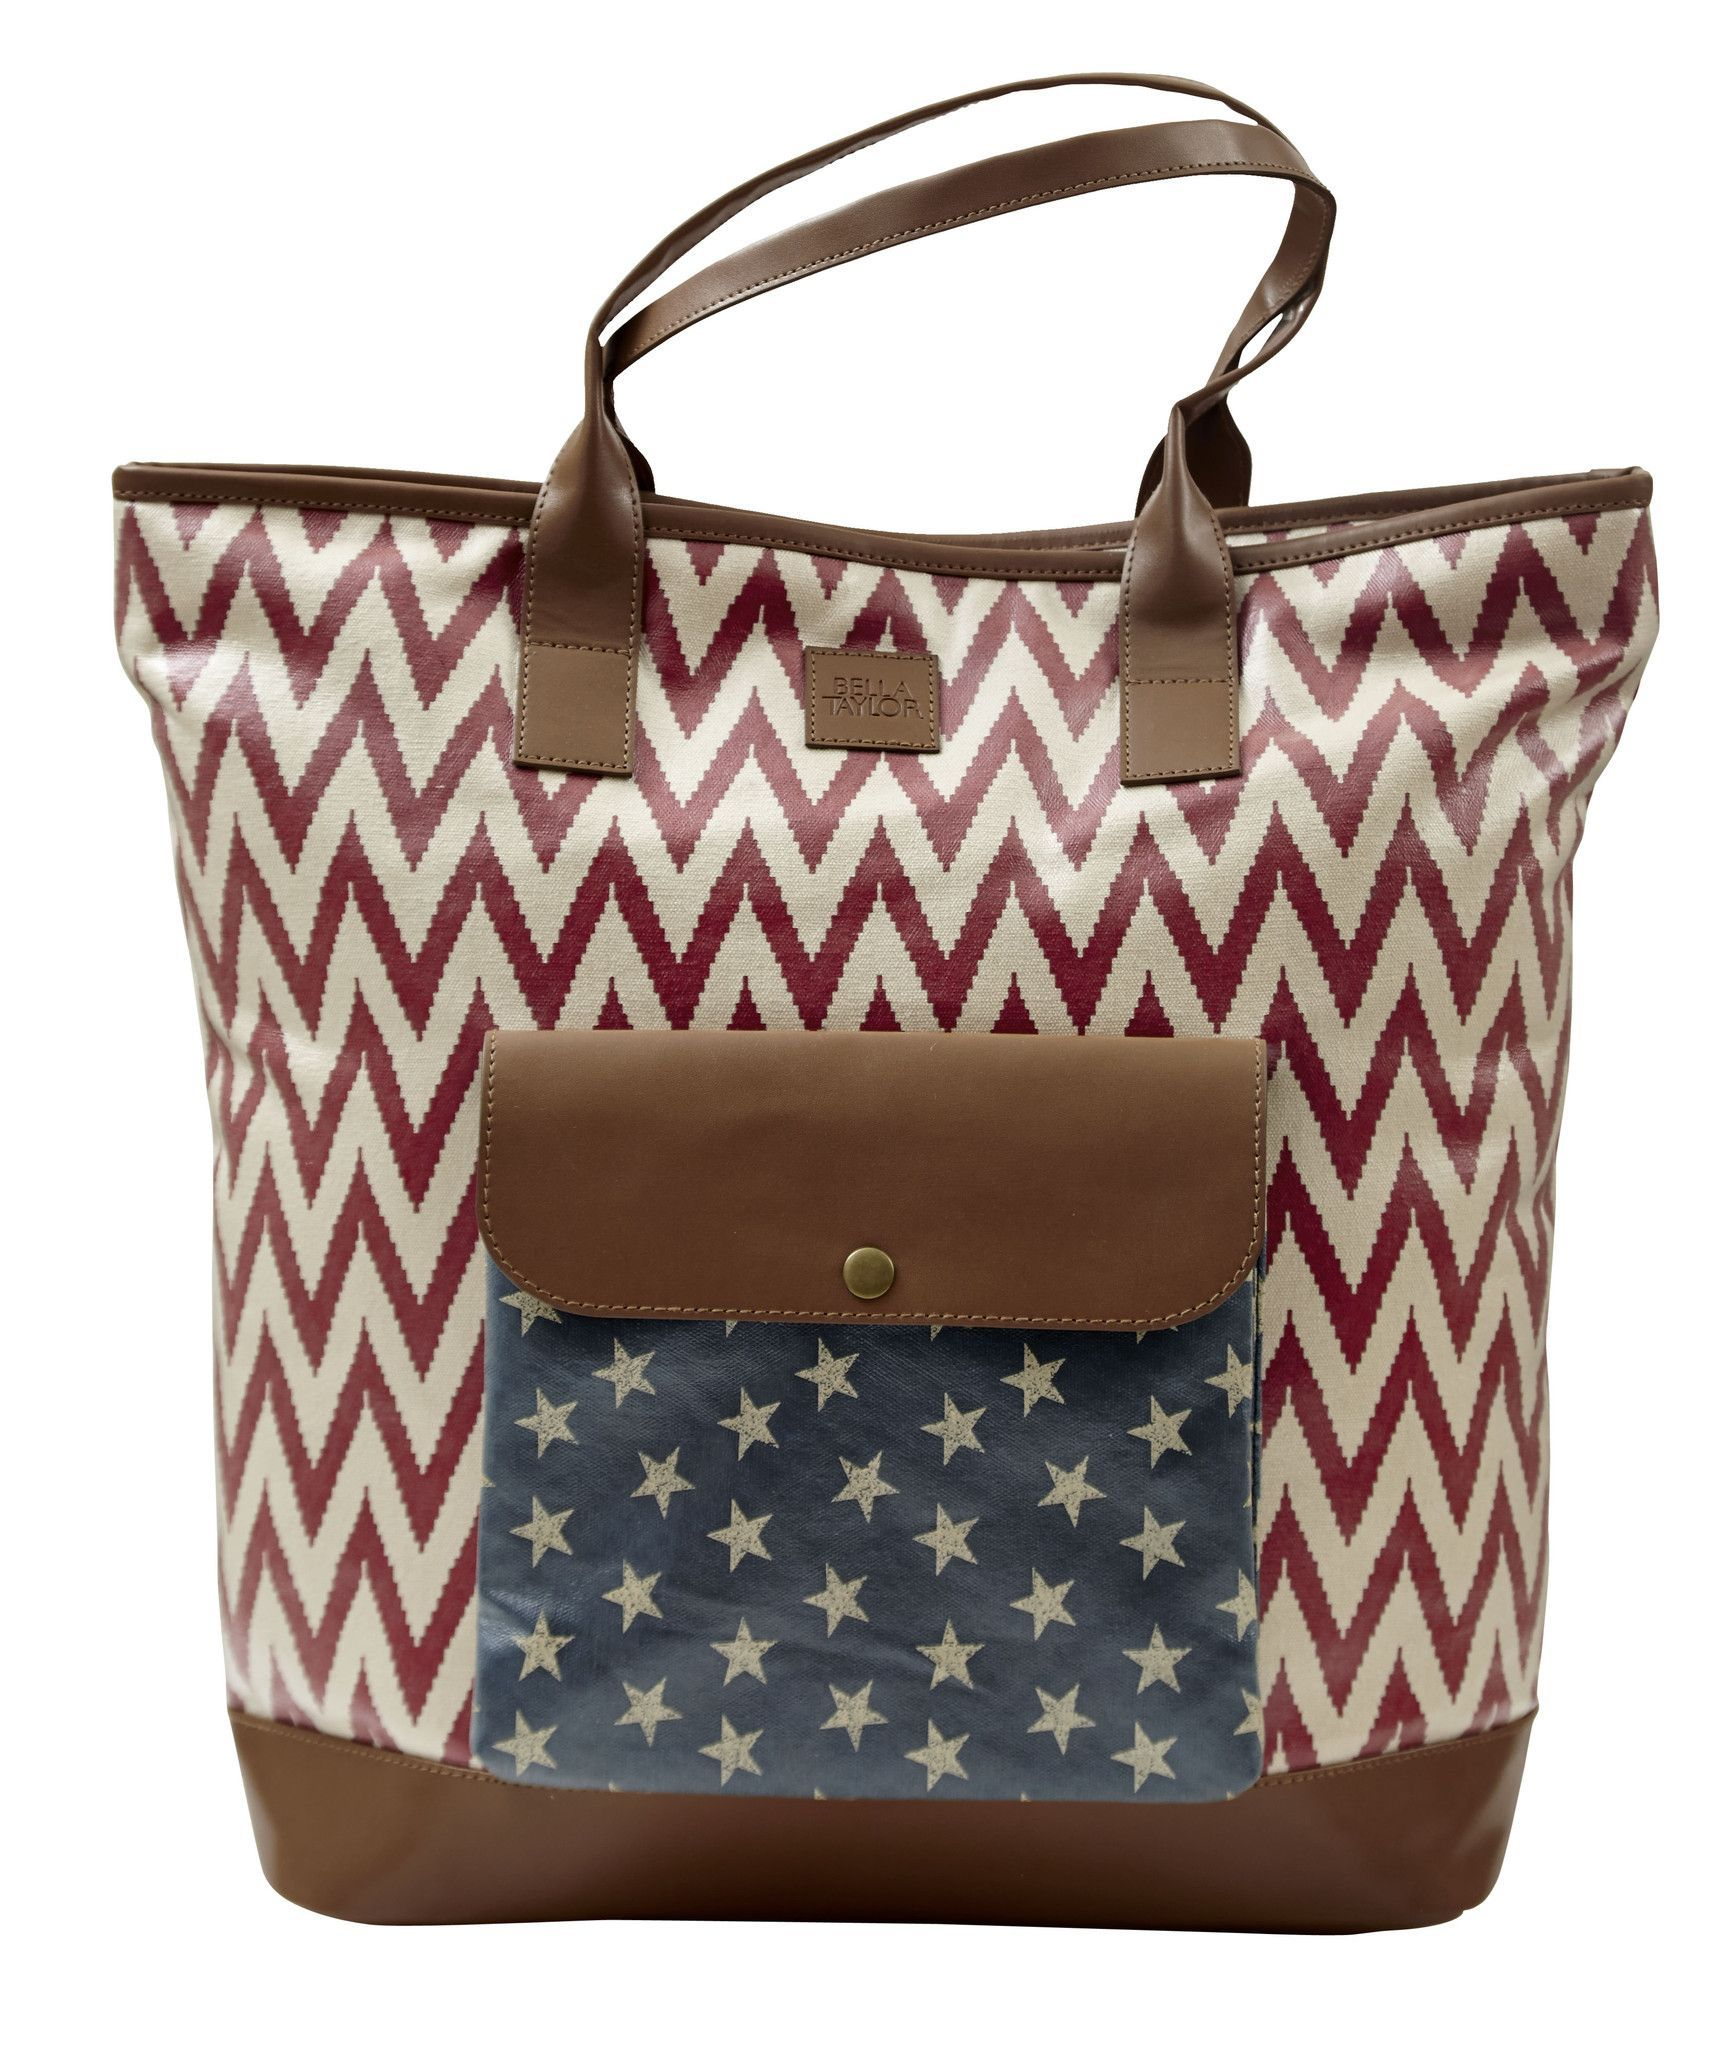 Coated Cotton Canvas Featuring A Vintage Blue Lining Antique Brass Hardware And Camel Brown Vegan Leather The Caravan Tote Is Perfect For An Overnight Bag